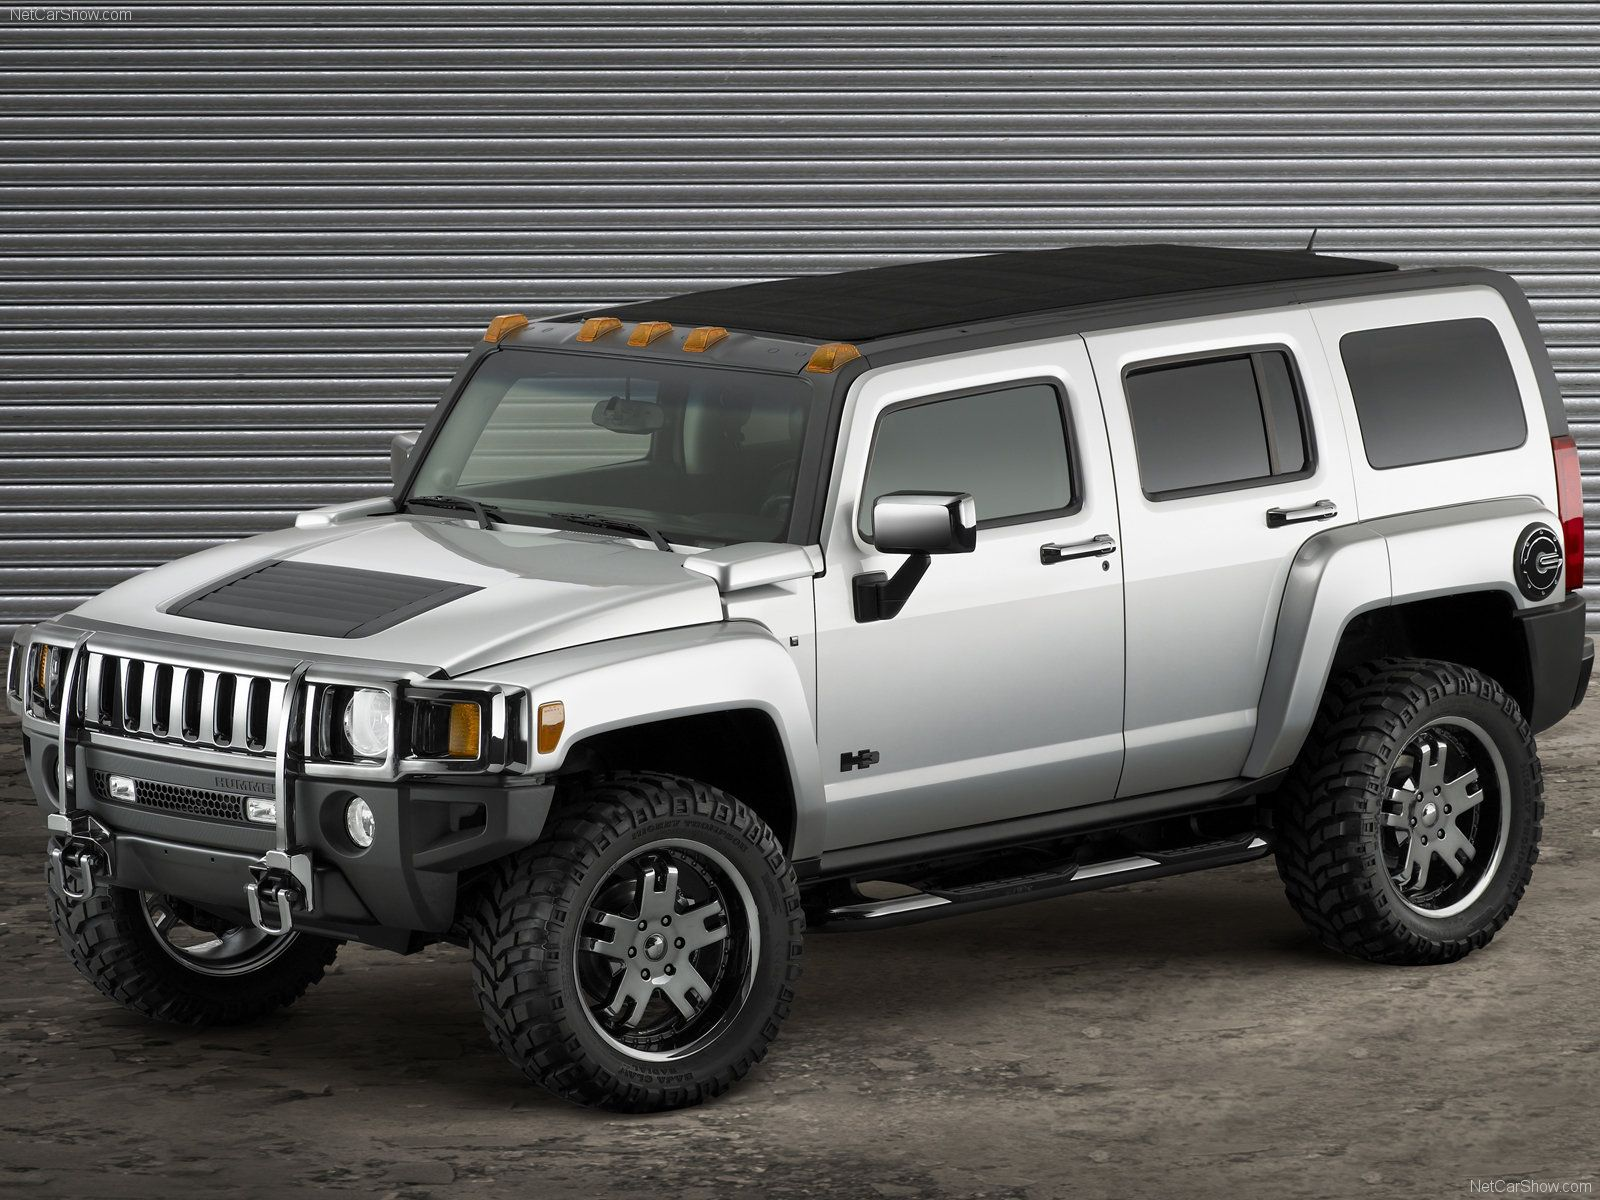 Hummer H3 Open Top Marty should do this to his